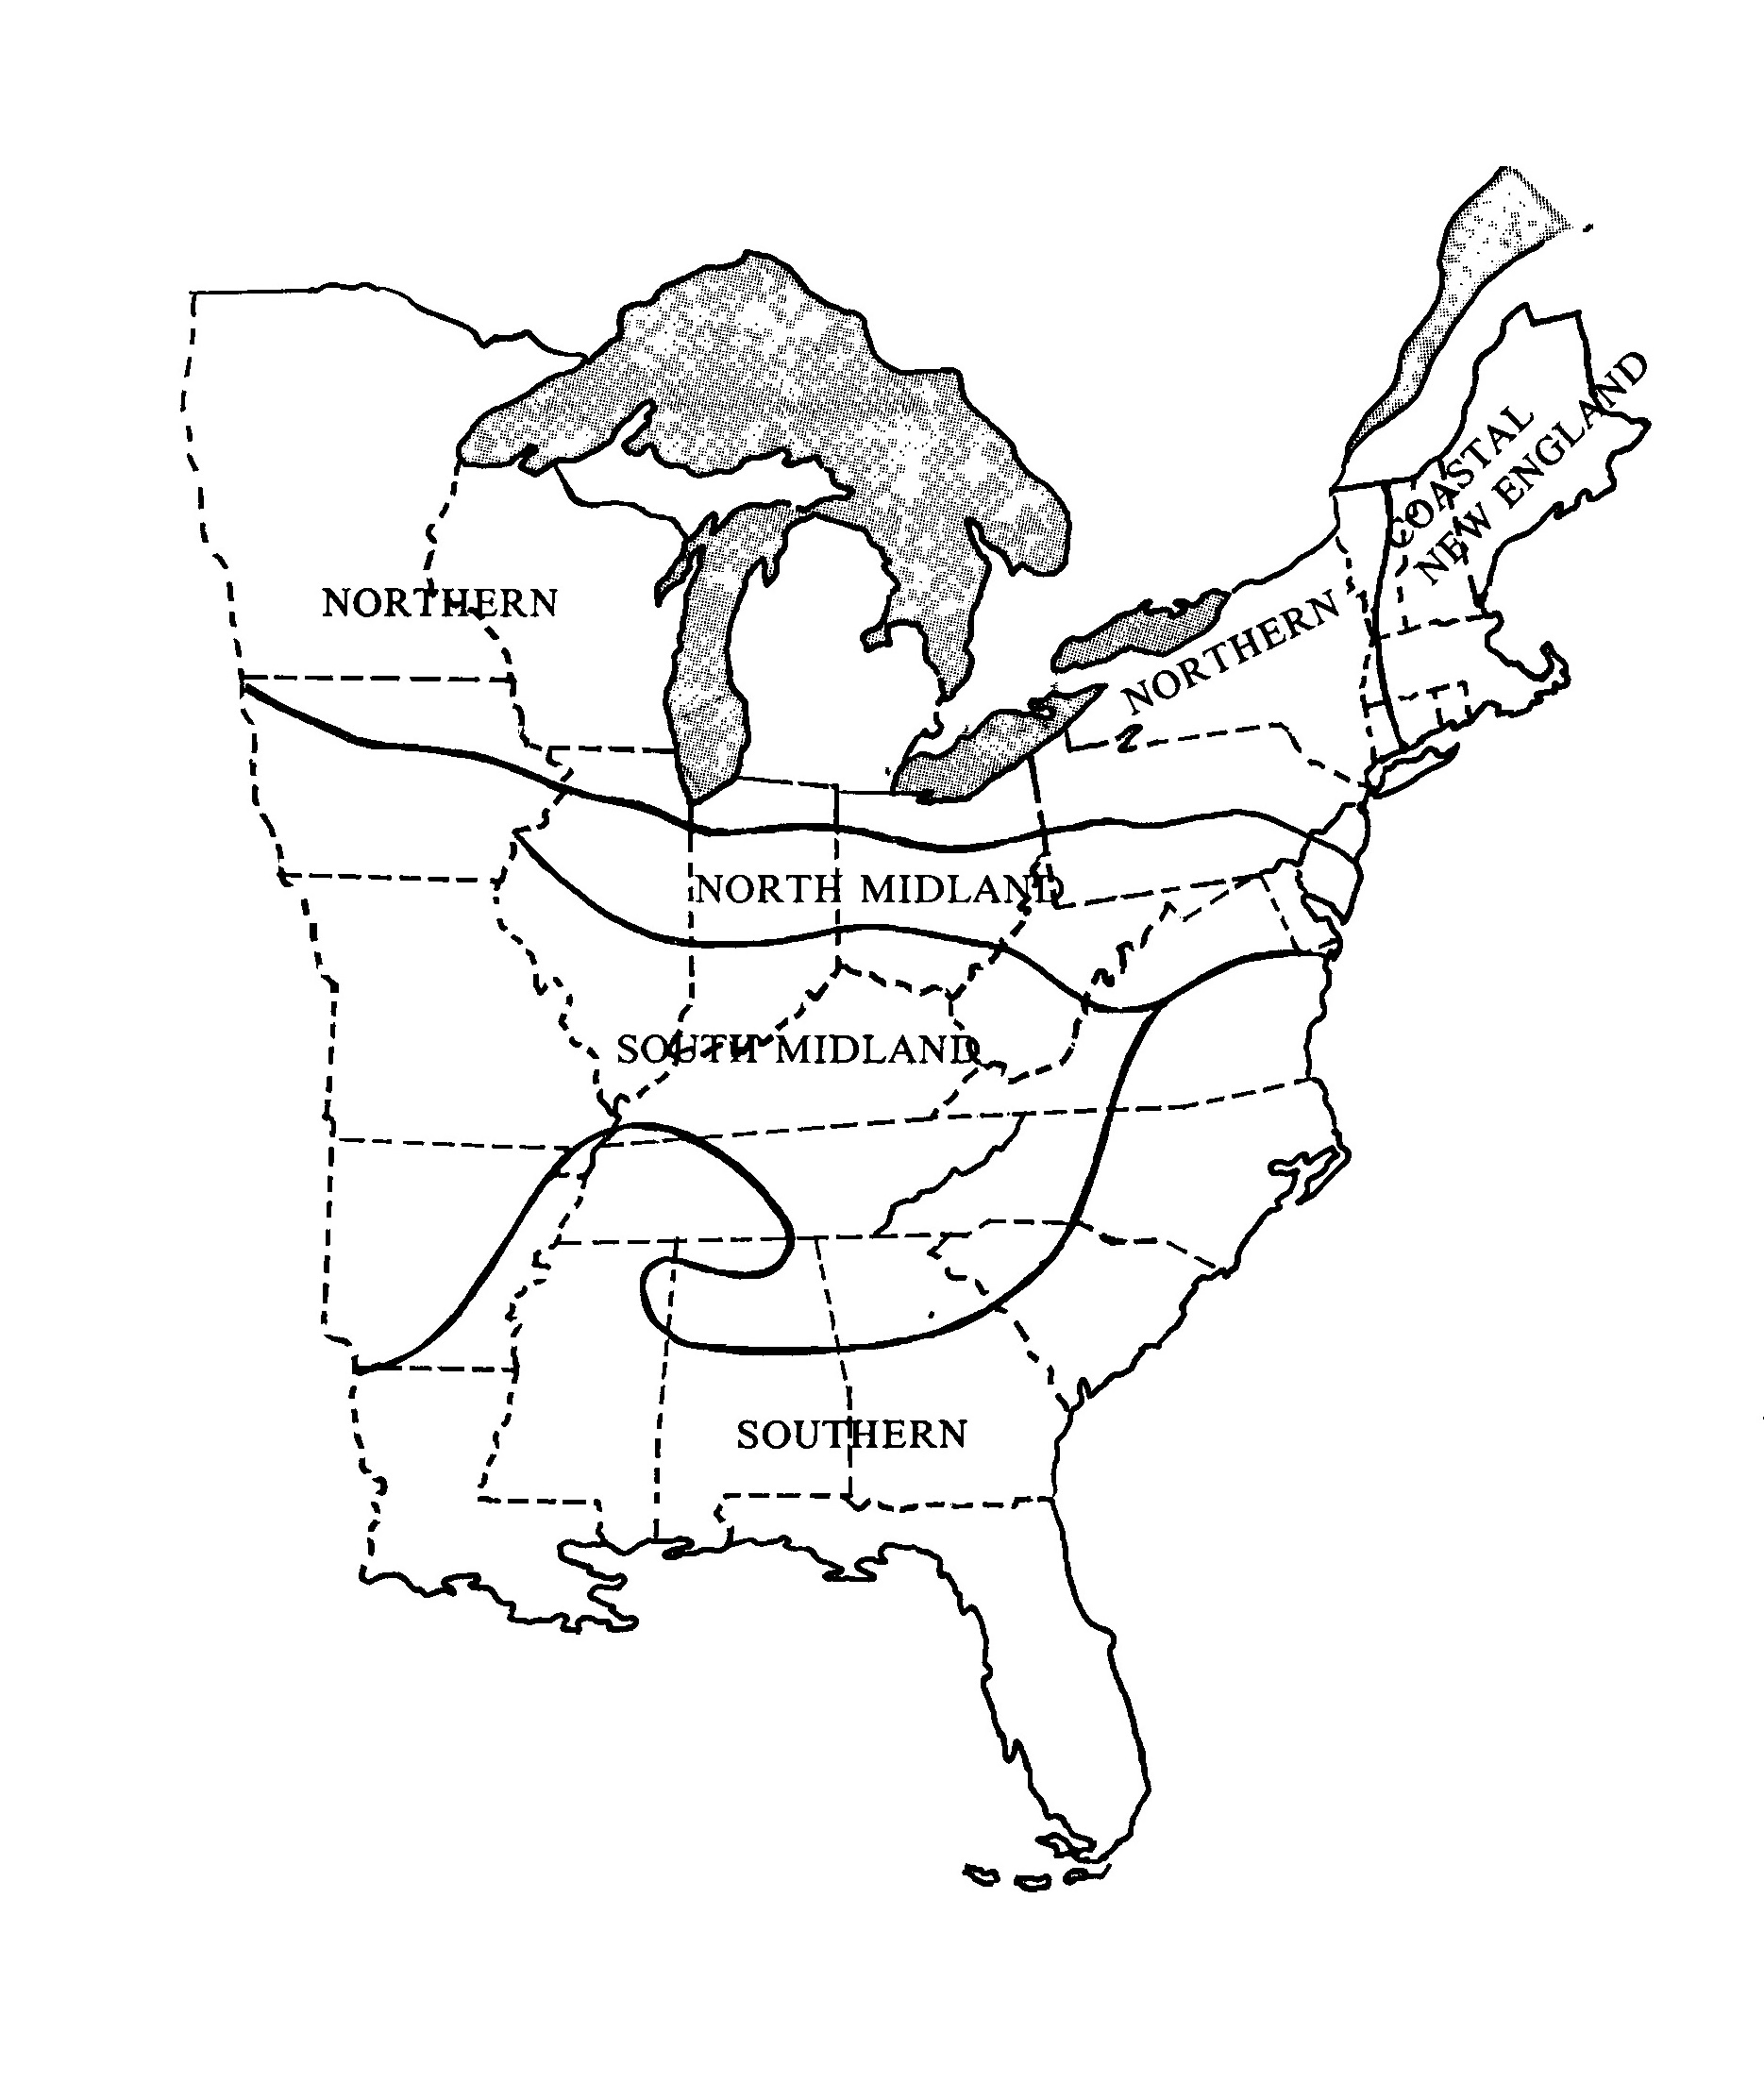 Map of major dialect regions in the United States from Language Files Materials for An Introduction to Language (1982).  sc 1 st  Triple Canopy & How to Own a Pool and Like It - Triple Canopy